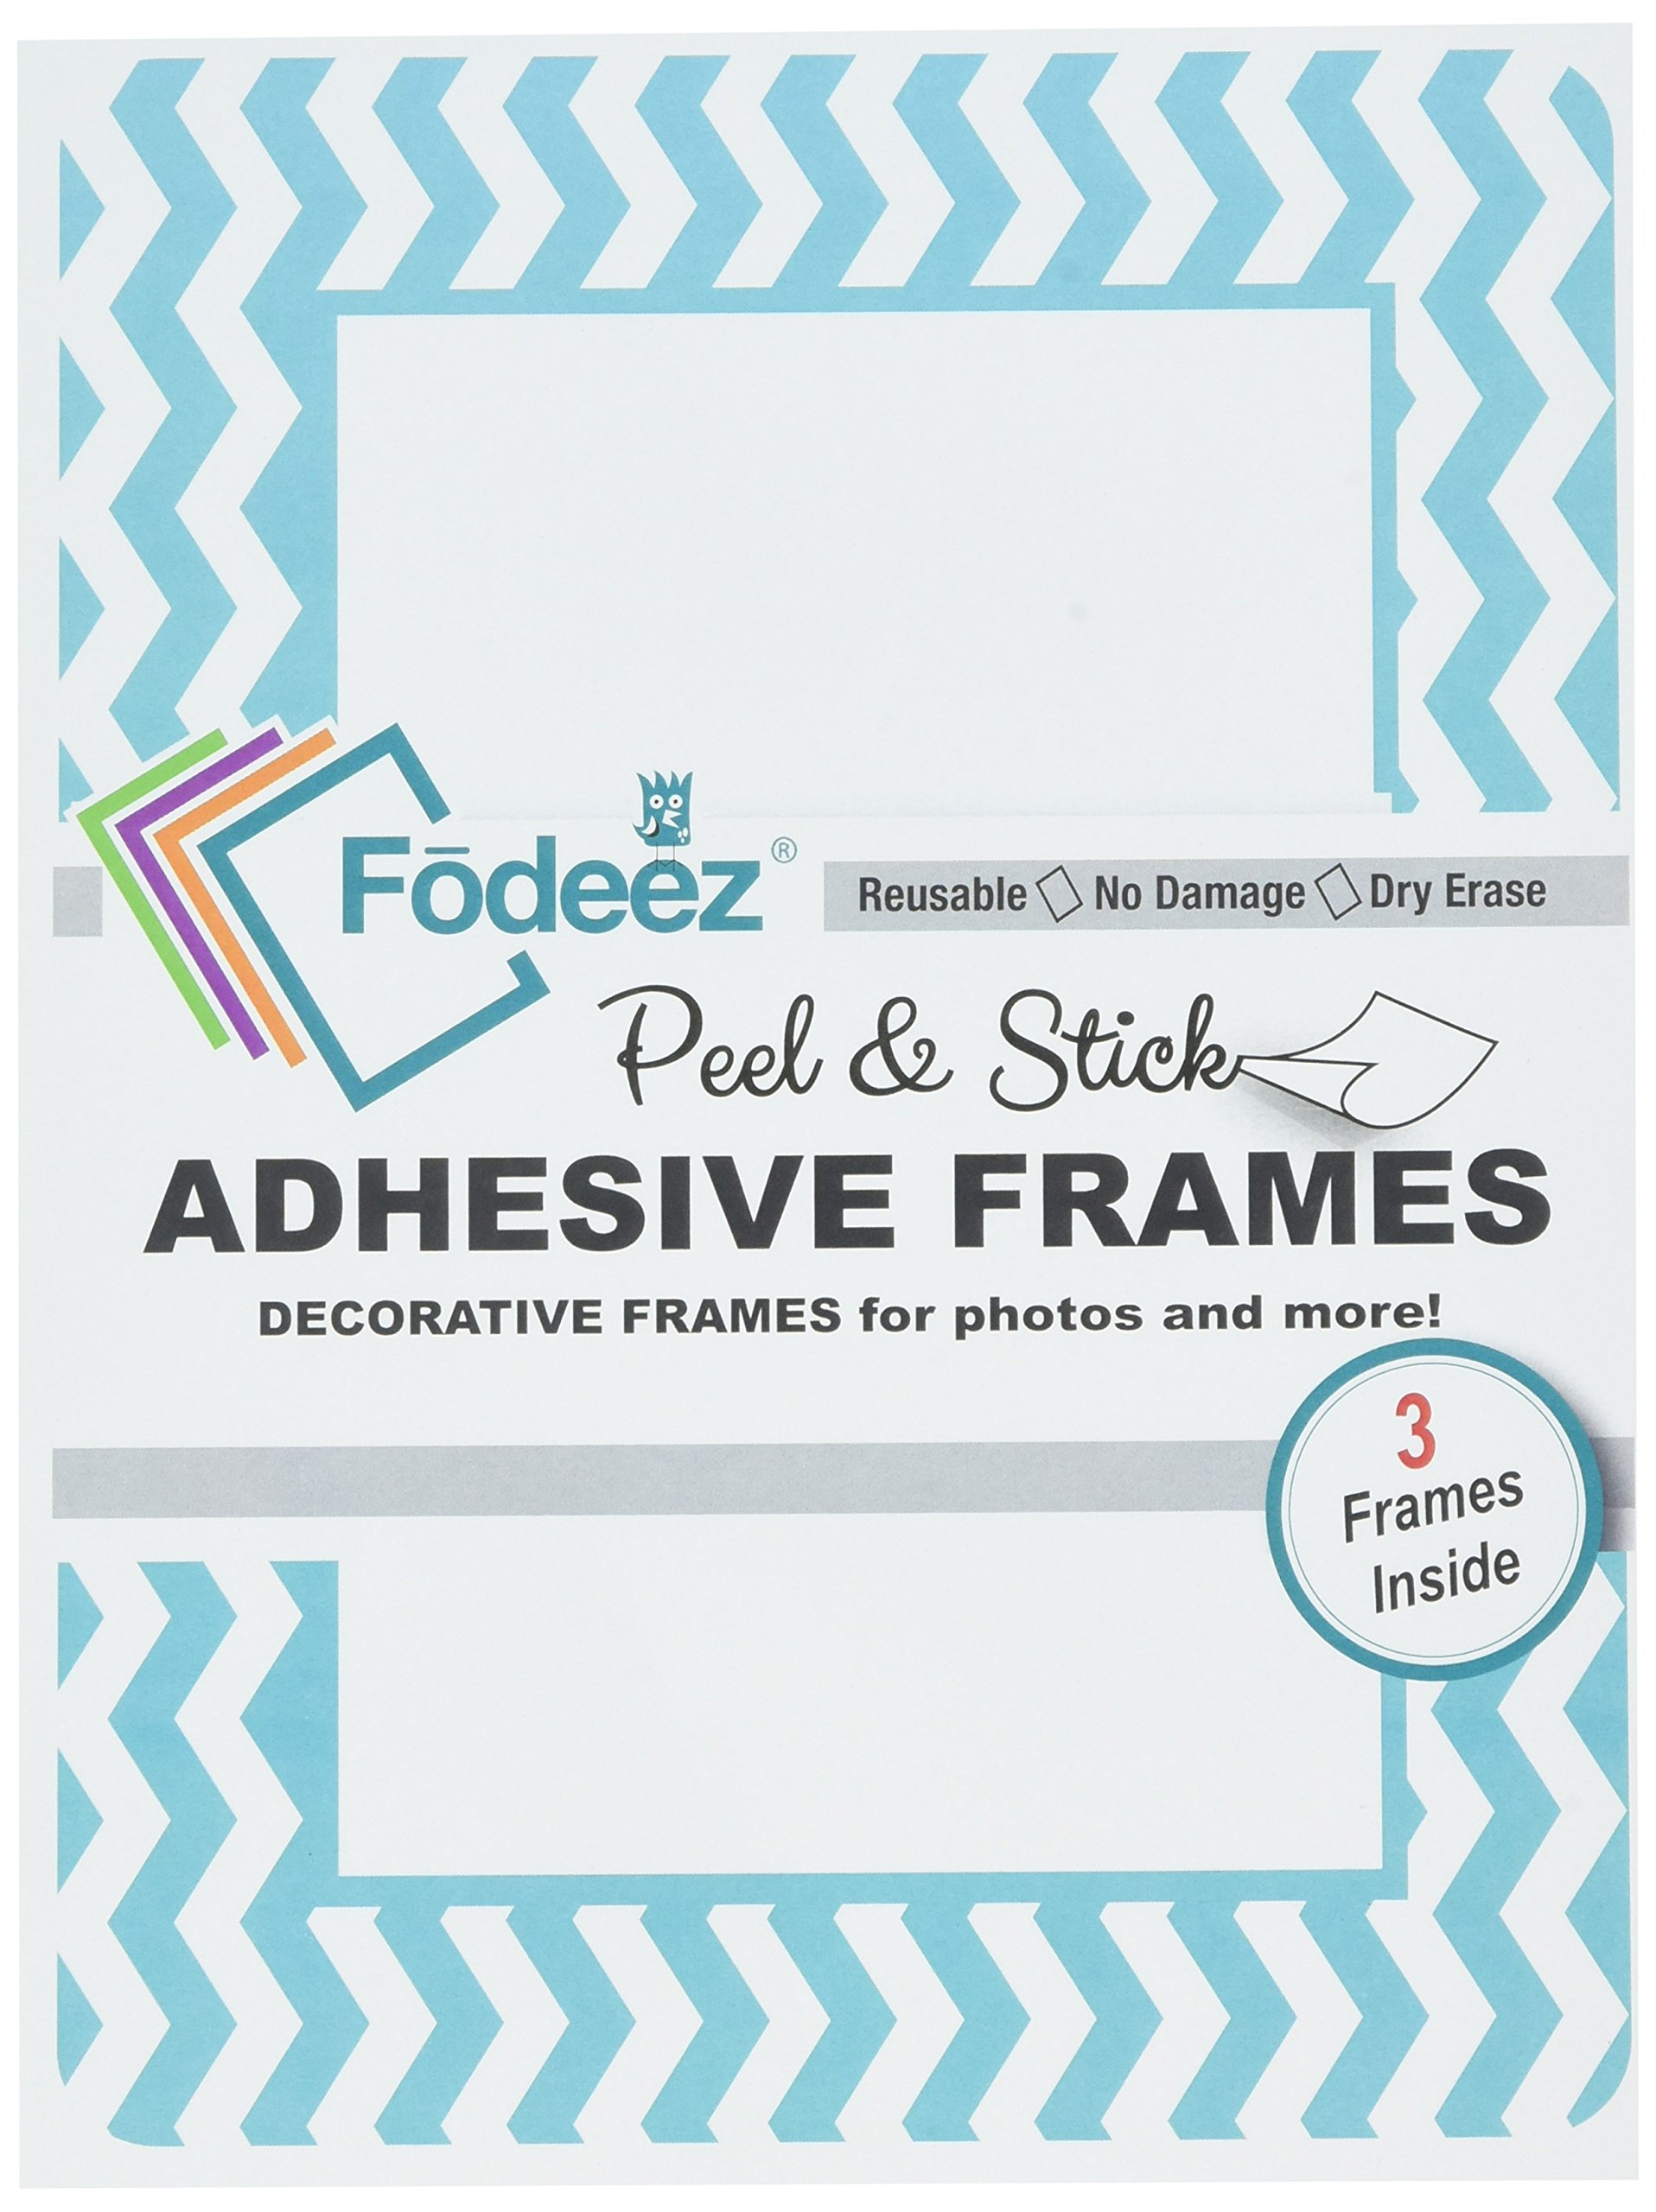 Fodeez Frames Peel & Stick Reusable Adhesive Picture Frames/Dry Erase Boards for Non-Magnetic Refrigerators, Solid Wood, Smooth Walls, etc, 4'' X 6'', Chevron Teal, Pack of 3 (FF-46-03-CHEV-TEAL)